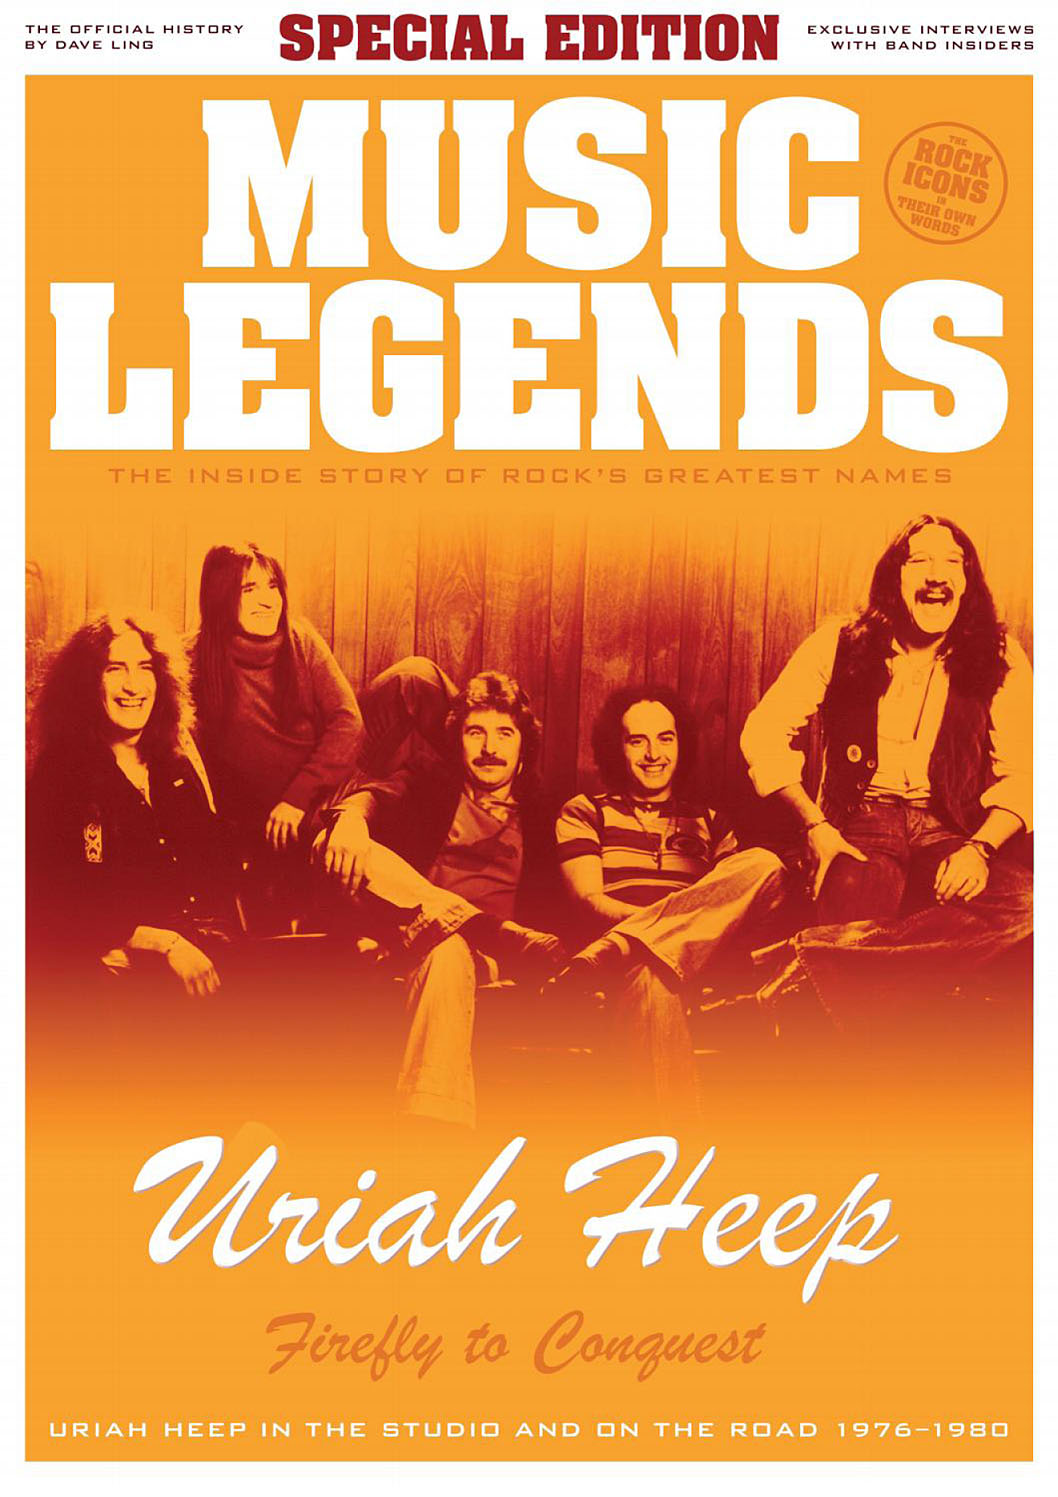 Music Legends - Uriah Heep Sp 2021.jpg